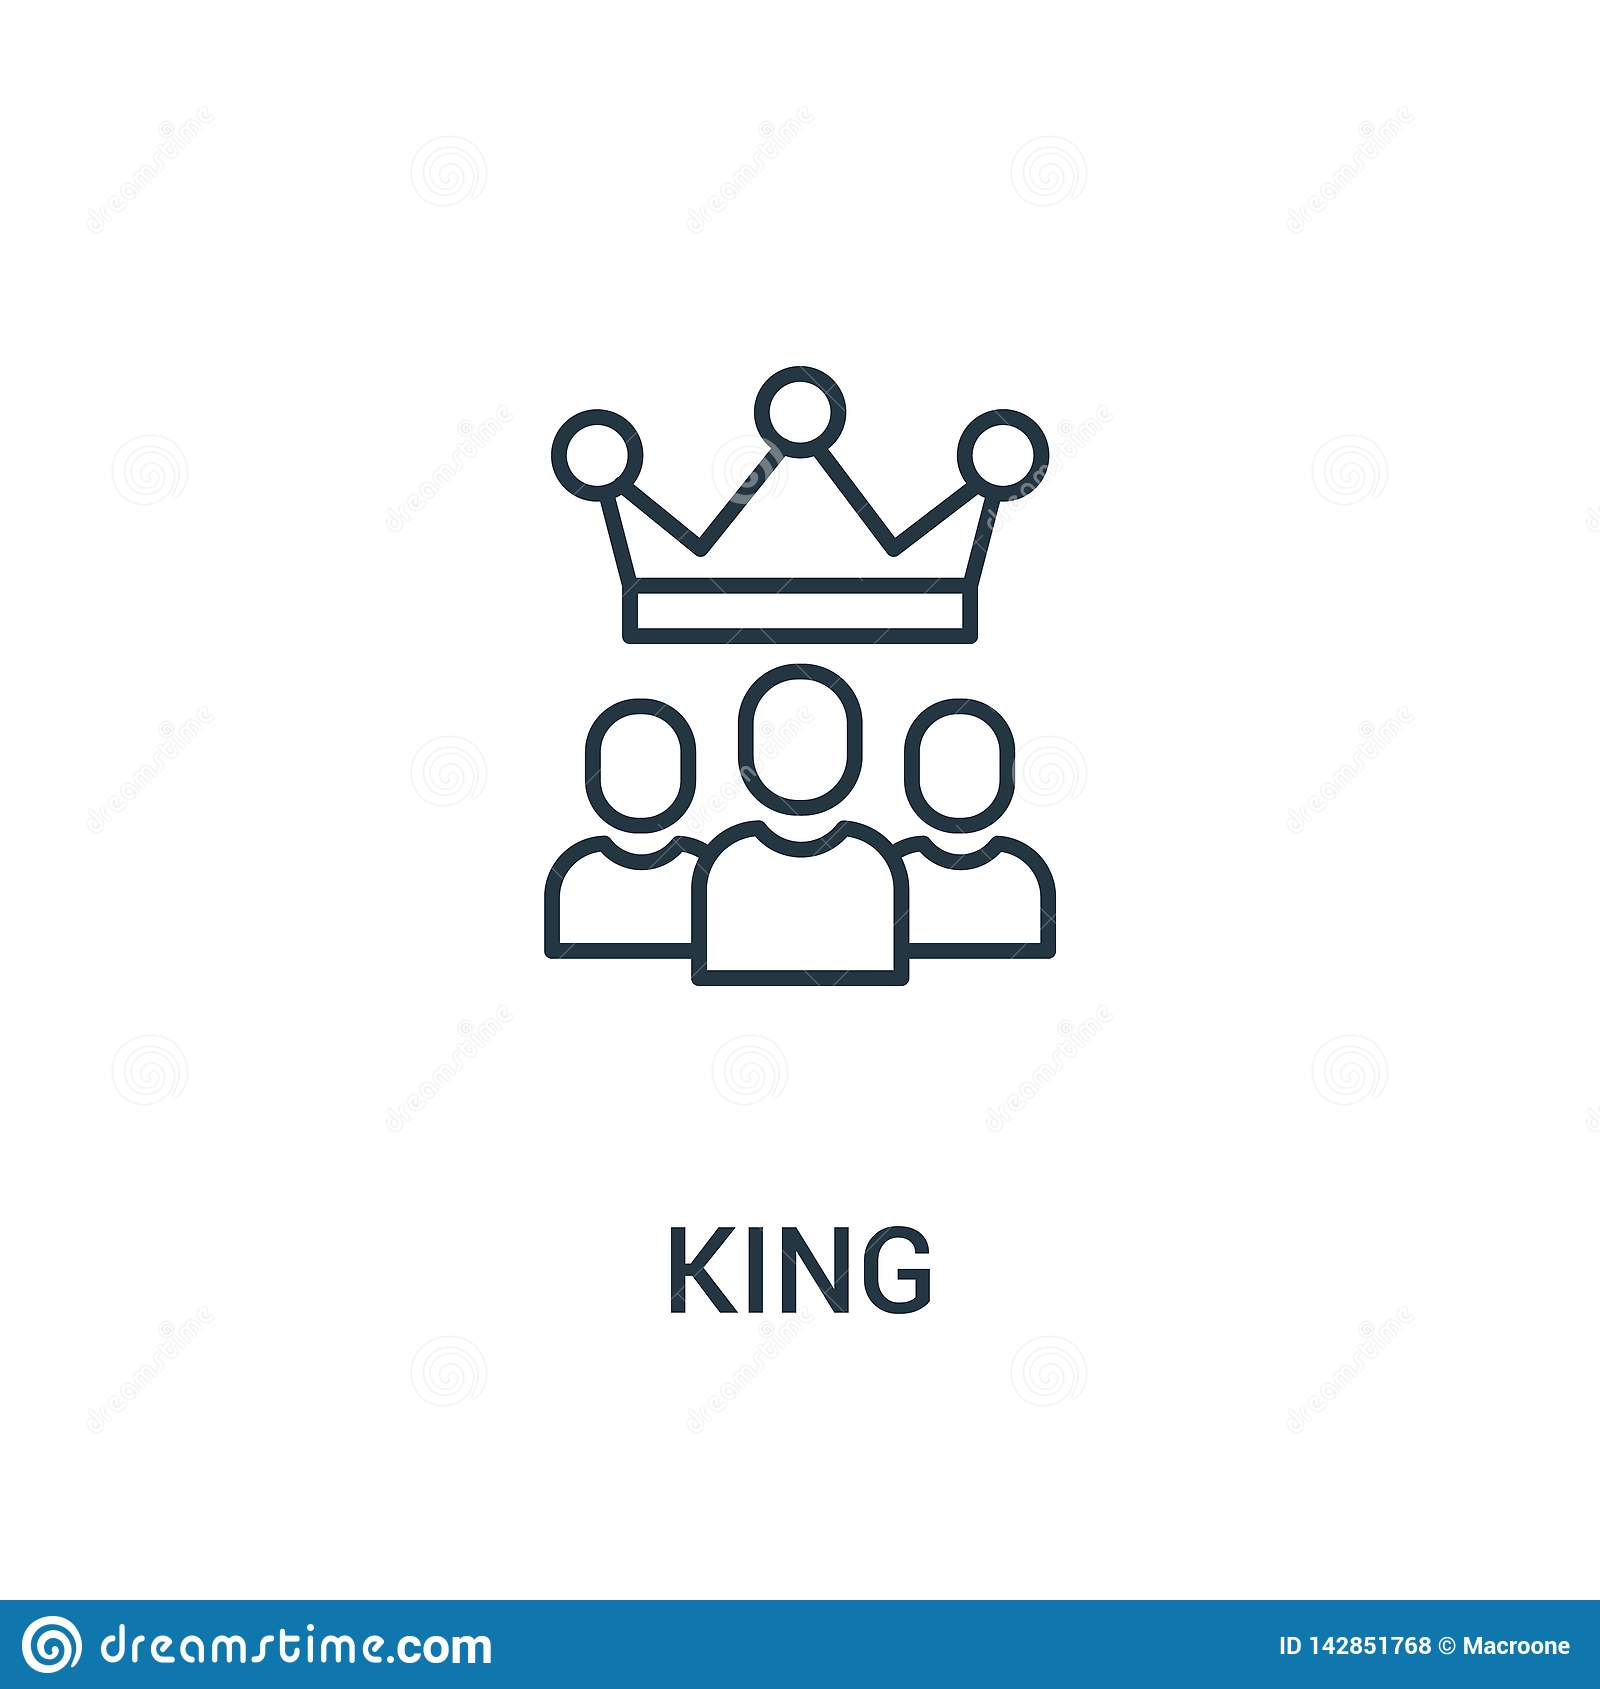 king icon vector from ads collection. Thin line king outline icon vector illustration. Linear symbol for use on web and mobile